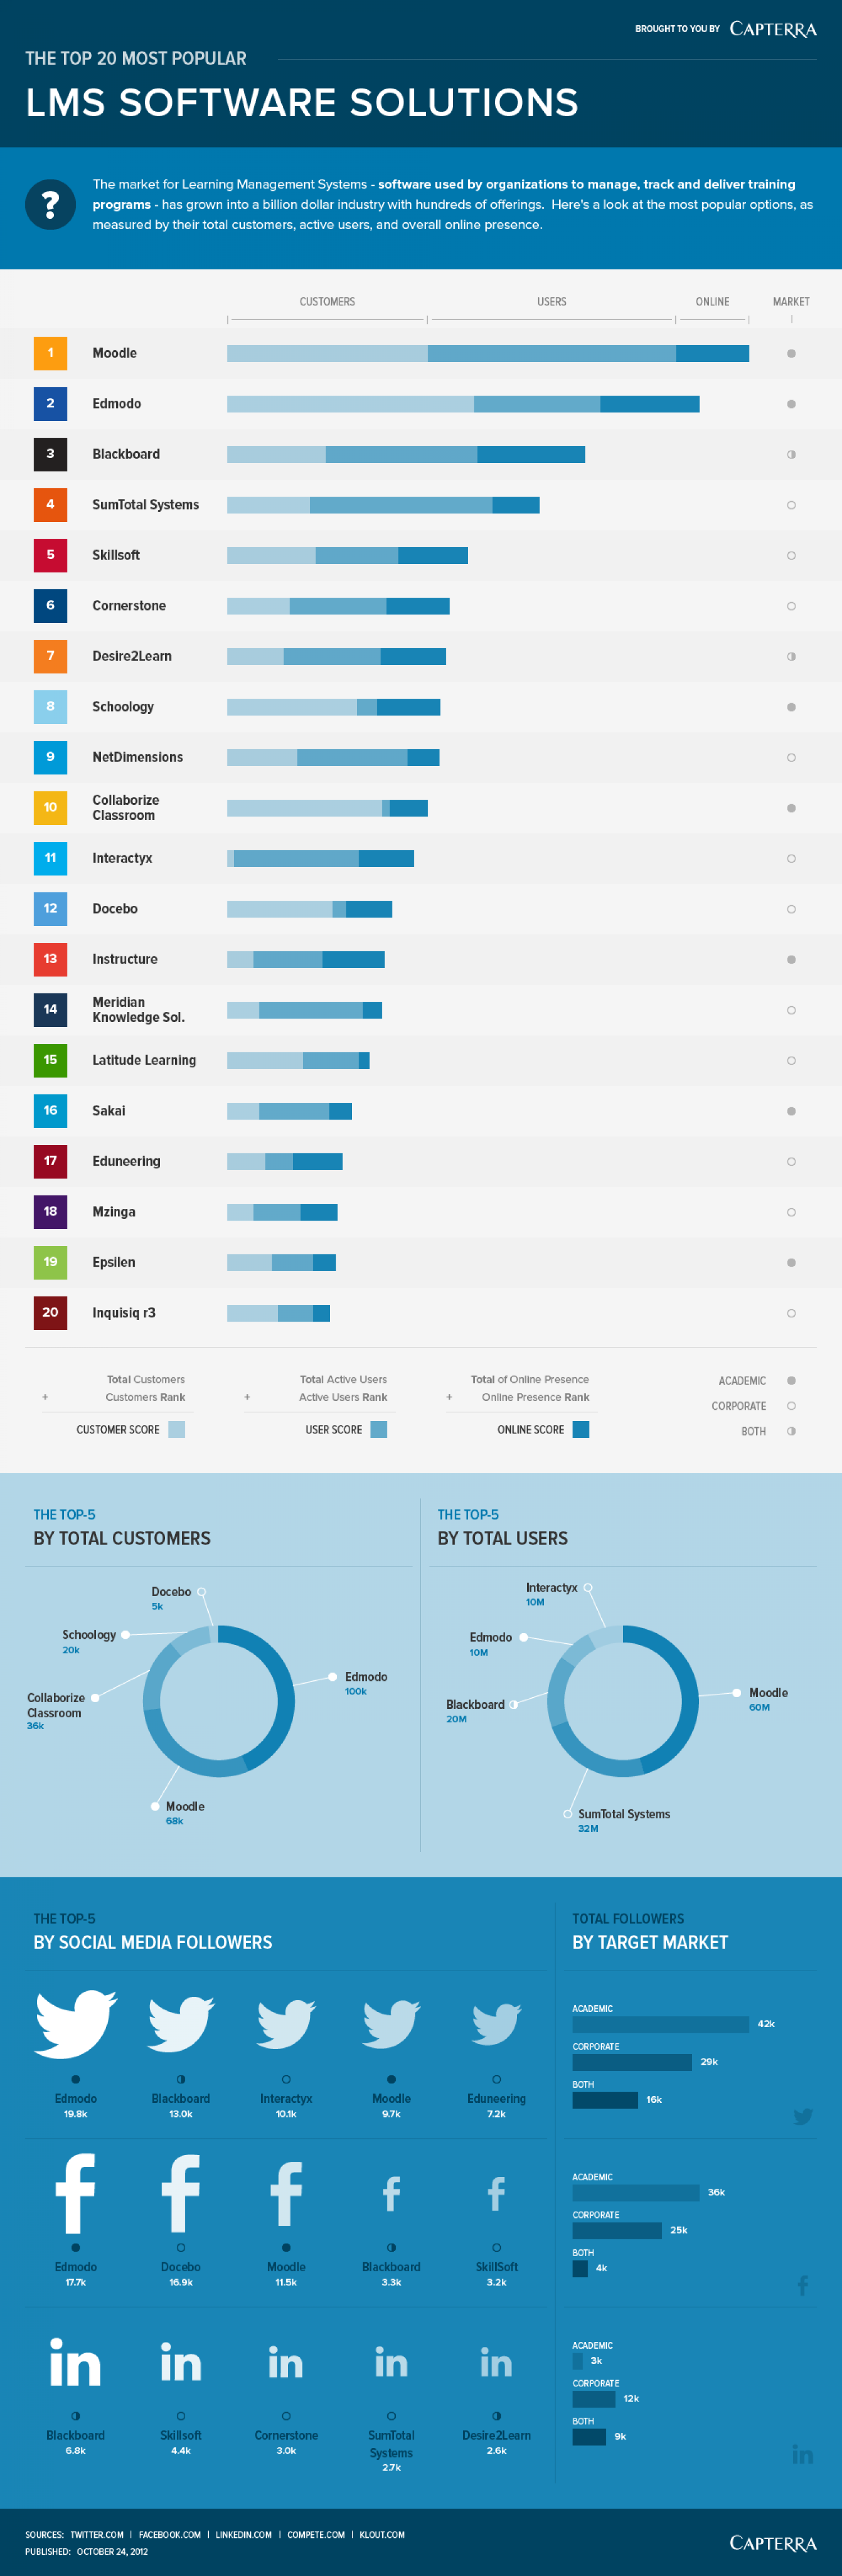 The Top 20 Most Popular LMS Software Solutions Infographic